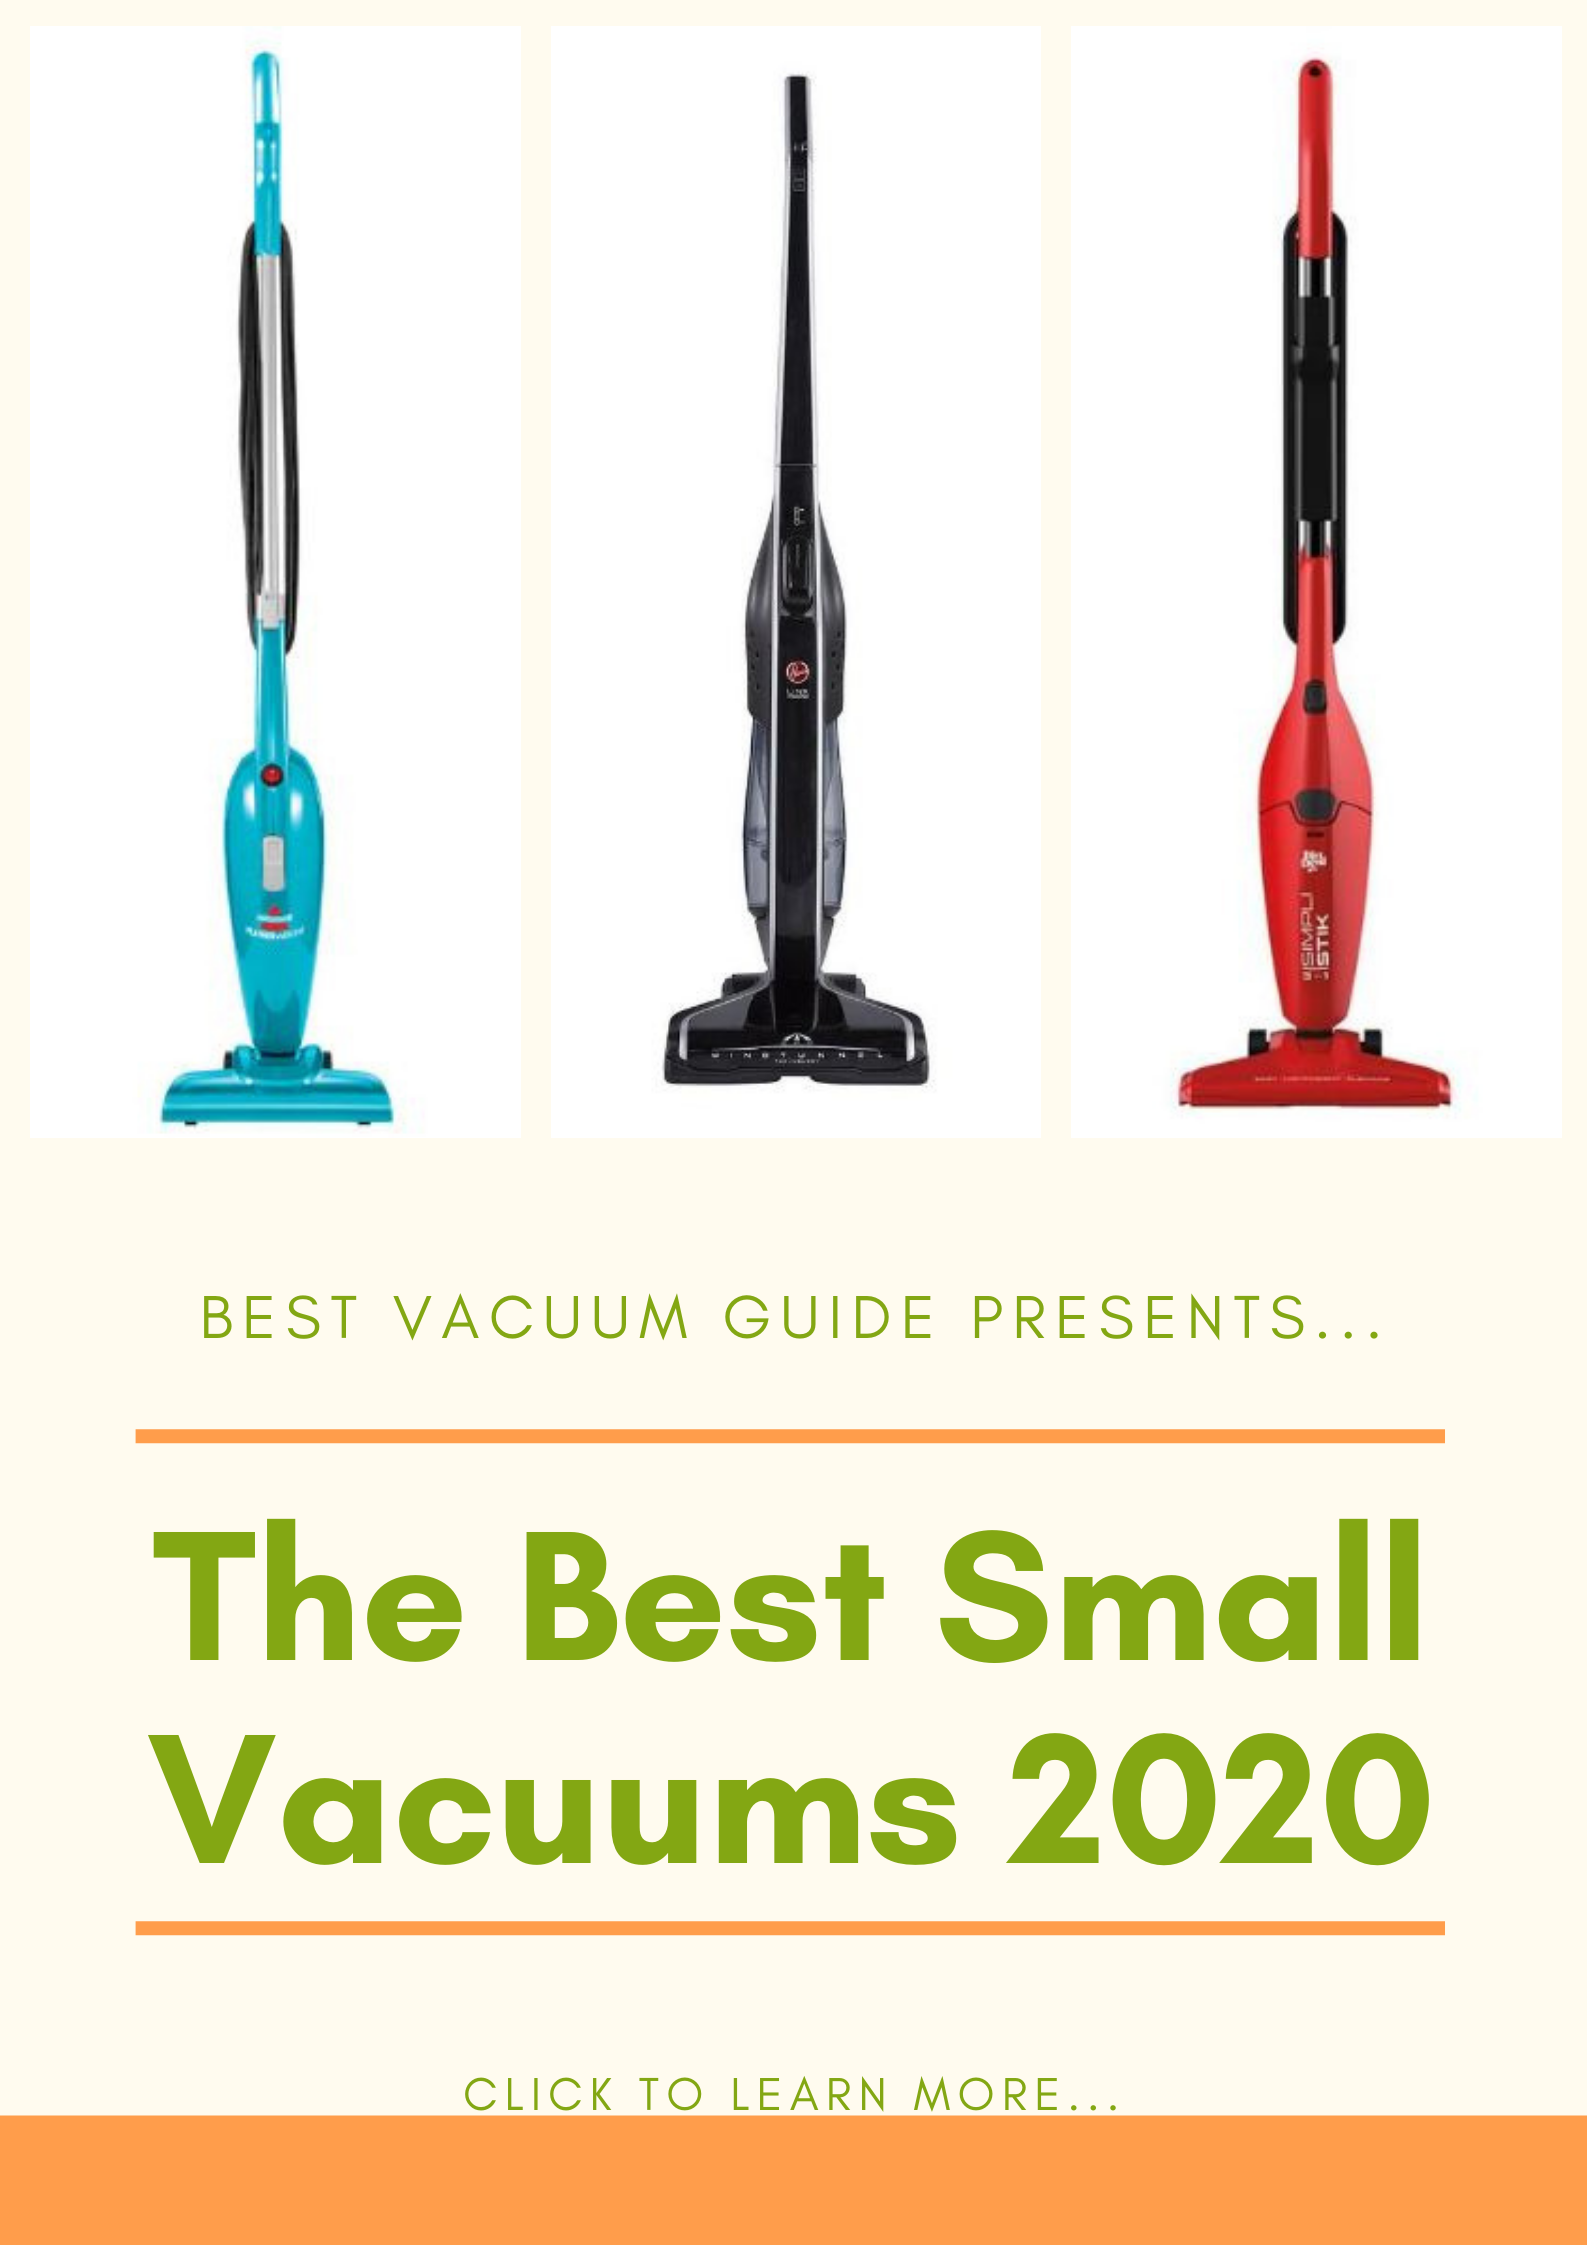 Best Small Vacuums 2020